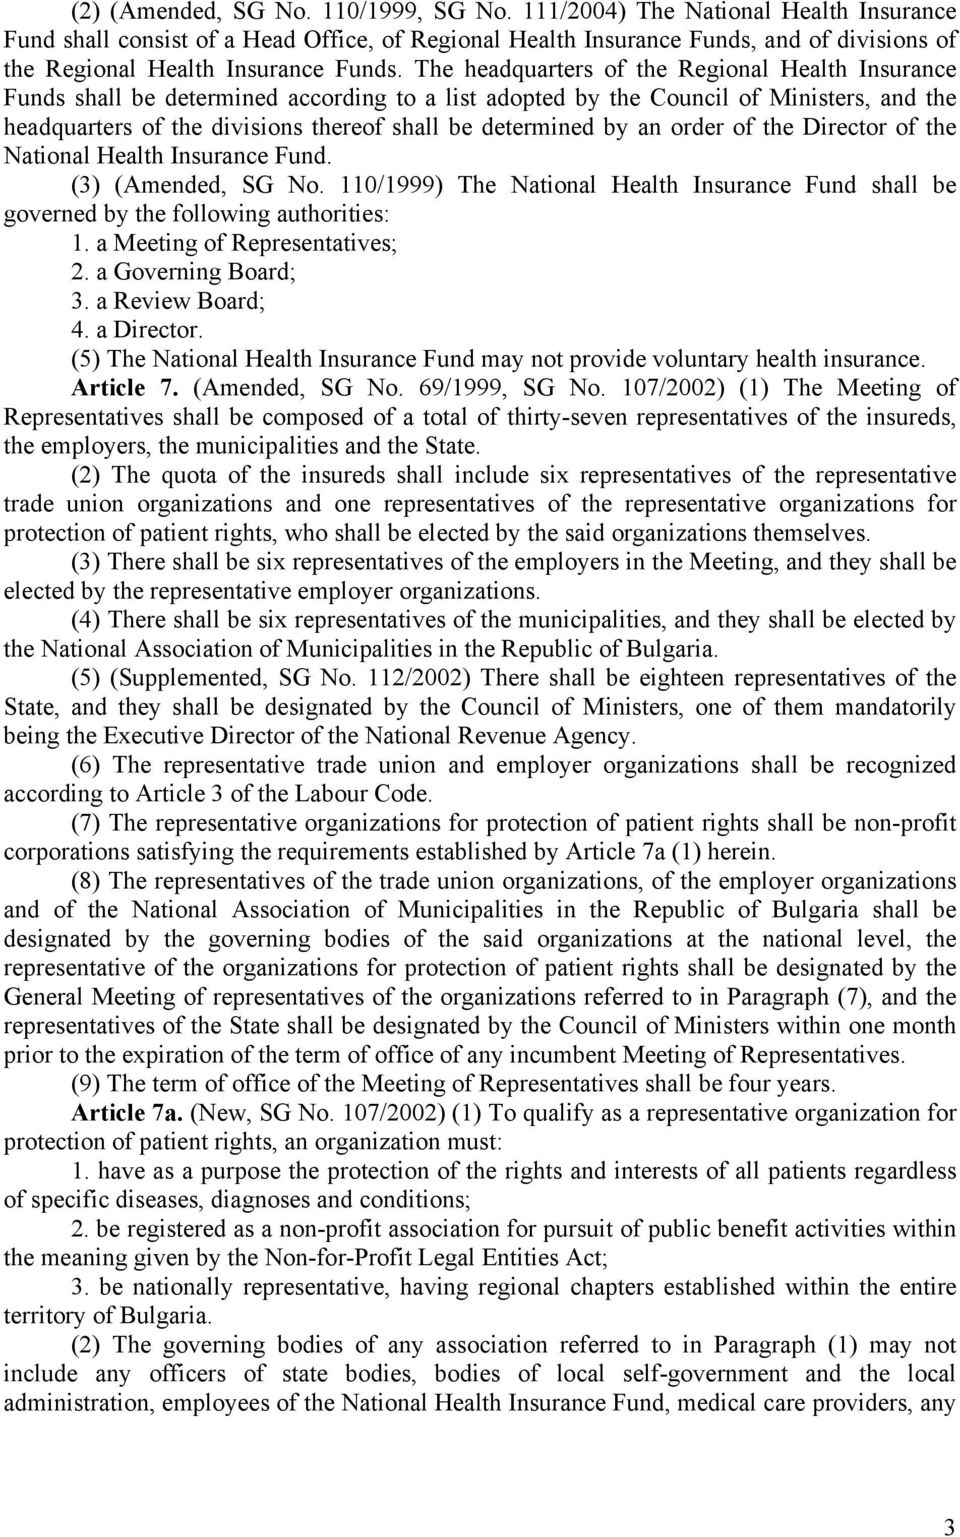 The headquarters of the Regional Health Insurance Funds shall be determined according to a list adopted by the Council of Ministers, and the headquarters of the divisions thereof shall be determined